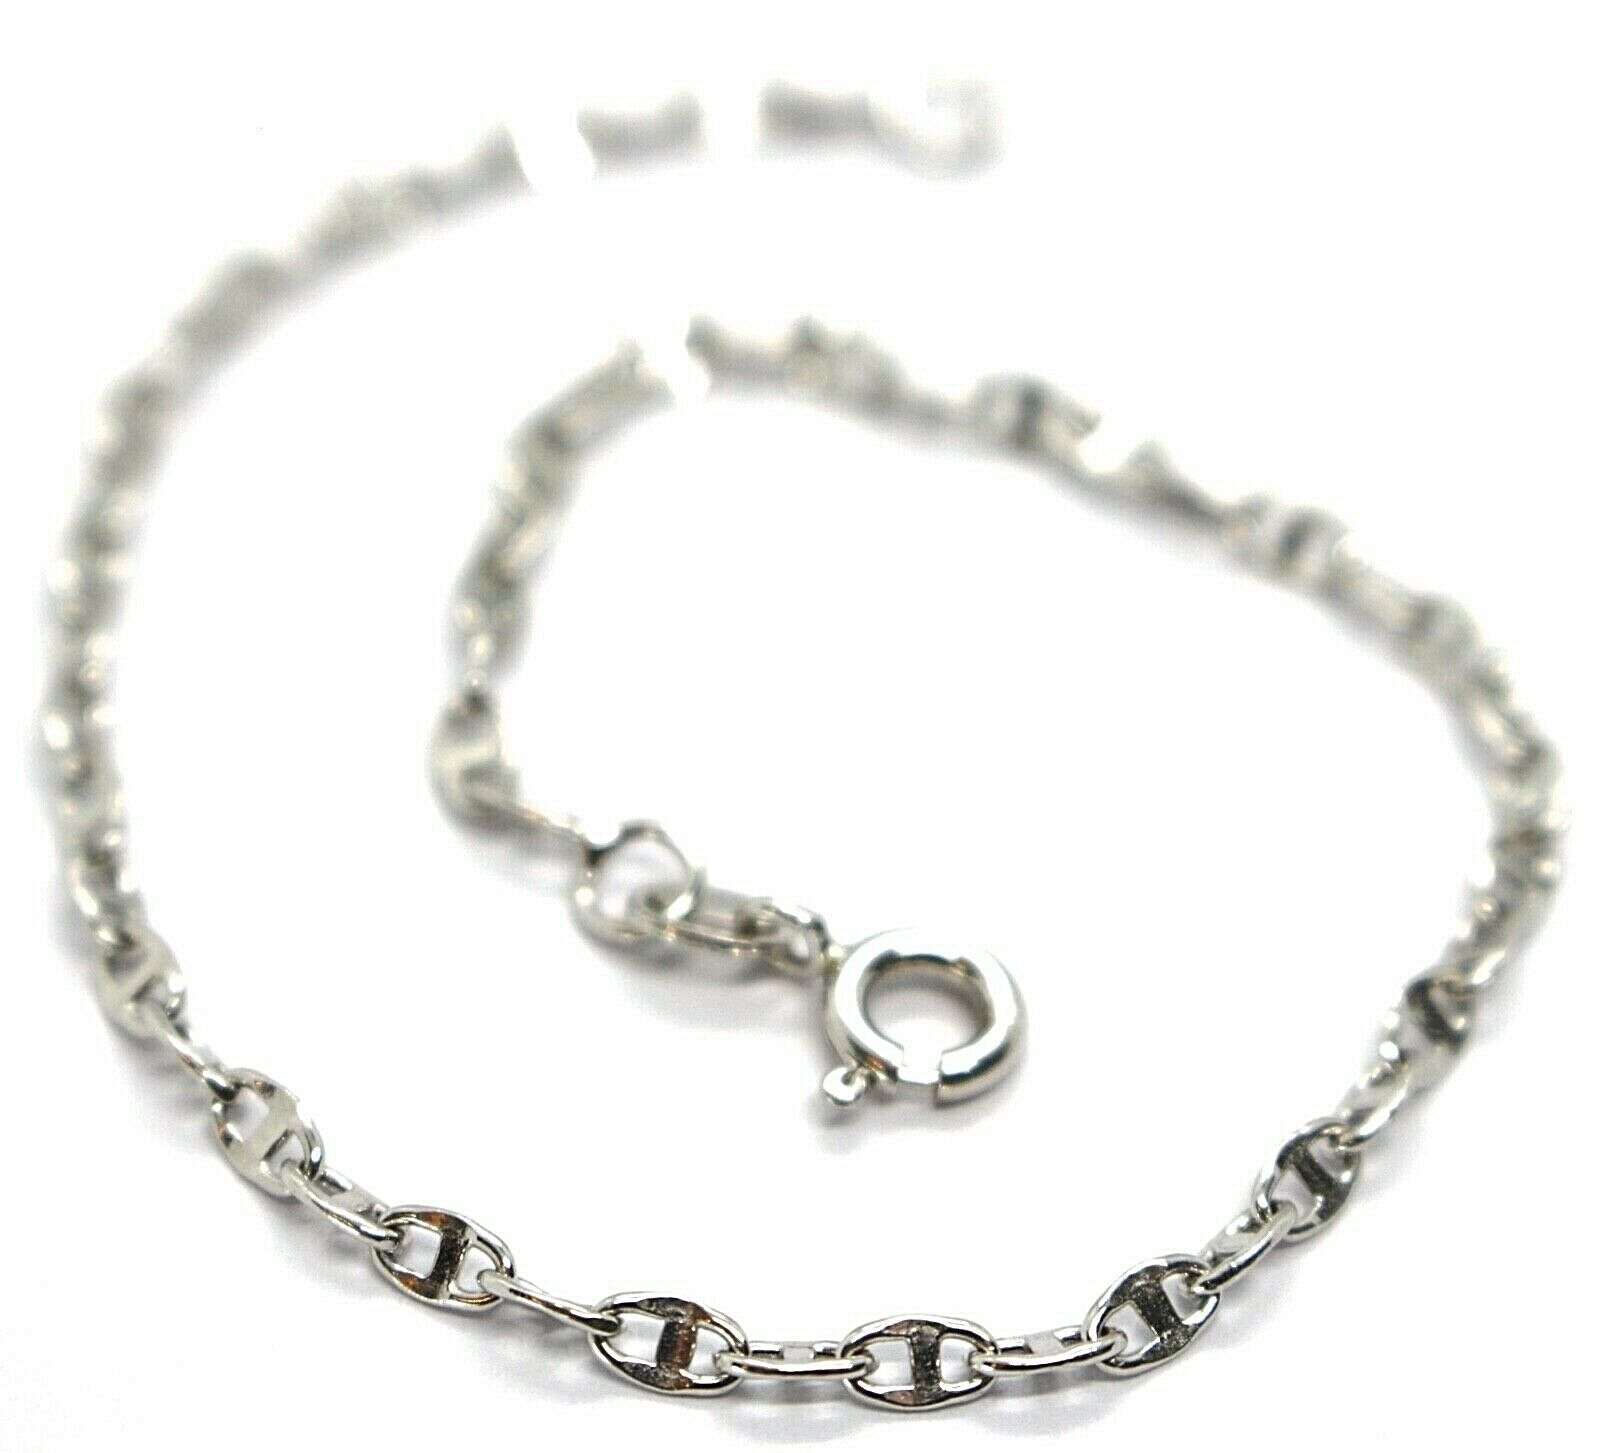 Primary image for 18K WHITE GOLD BRACELET, CROSSED MARINER LINKS 2.8mm, BRIGHT, LENGTH 7.7""